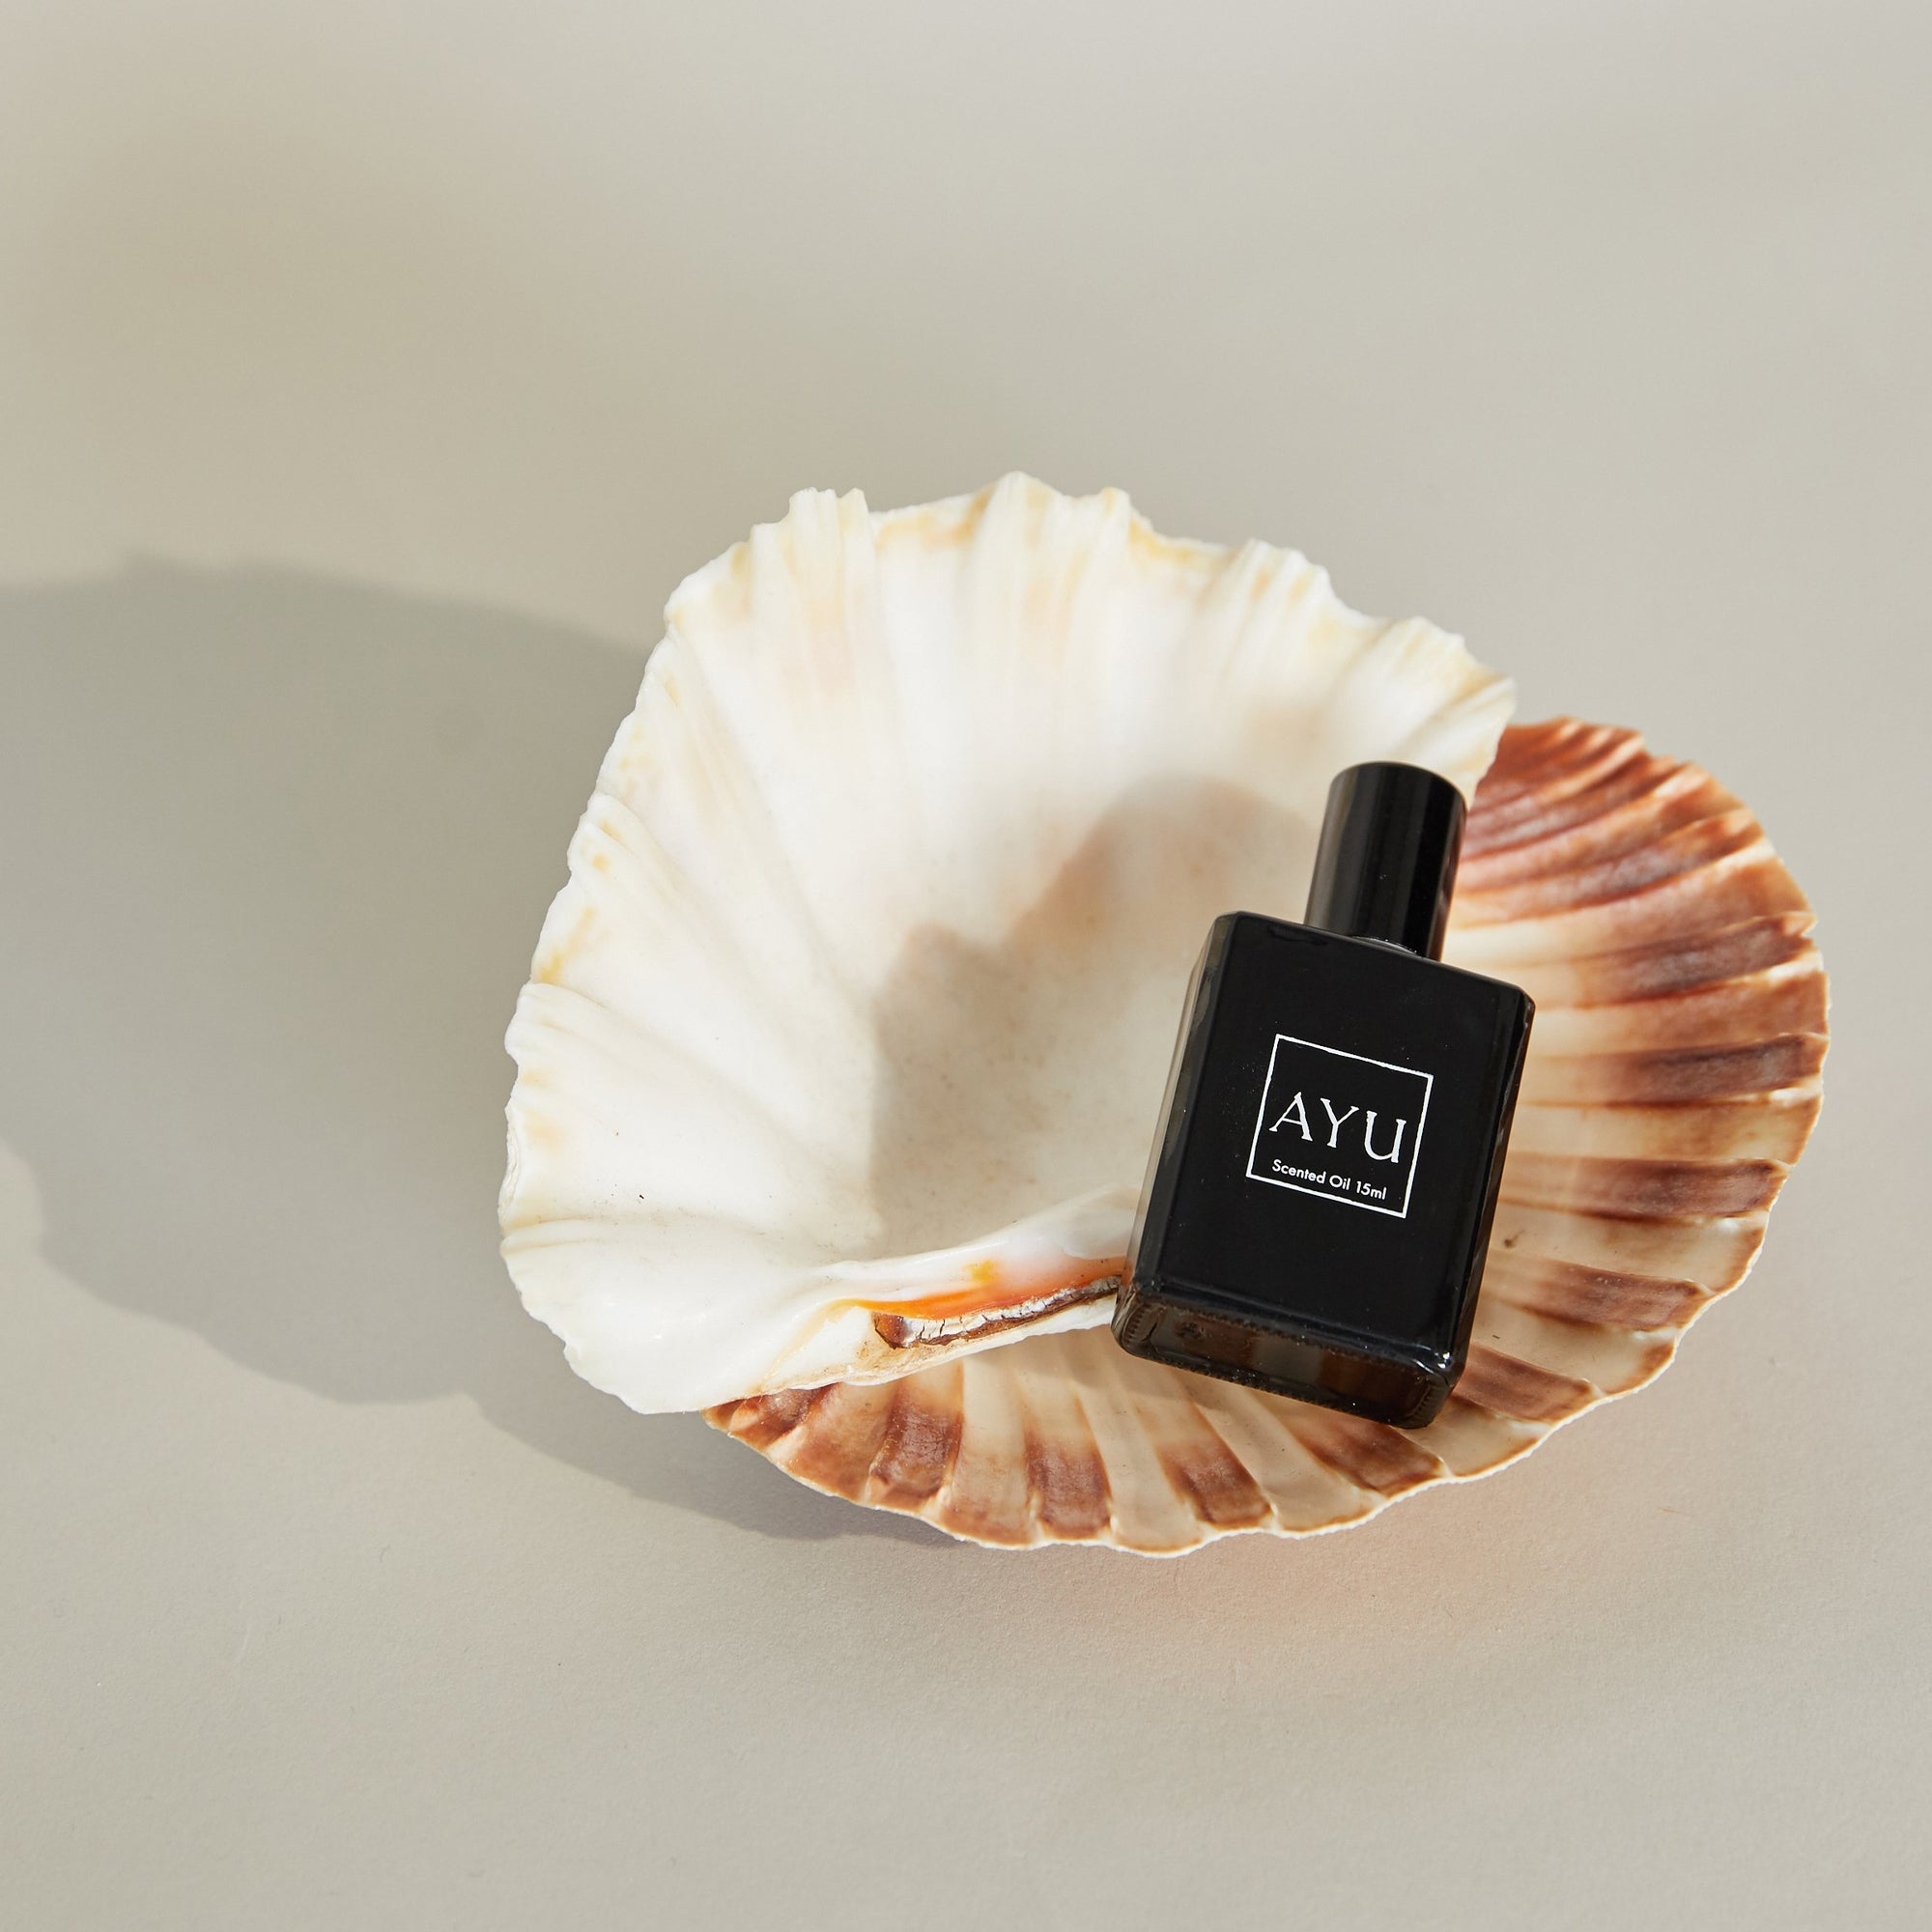 Ayu - Natural Perfume Oil - Sage - Paper Plane - NZ Stockist - Mount Maunganui